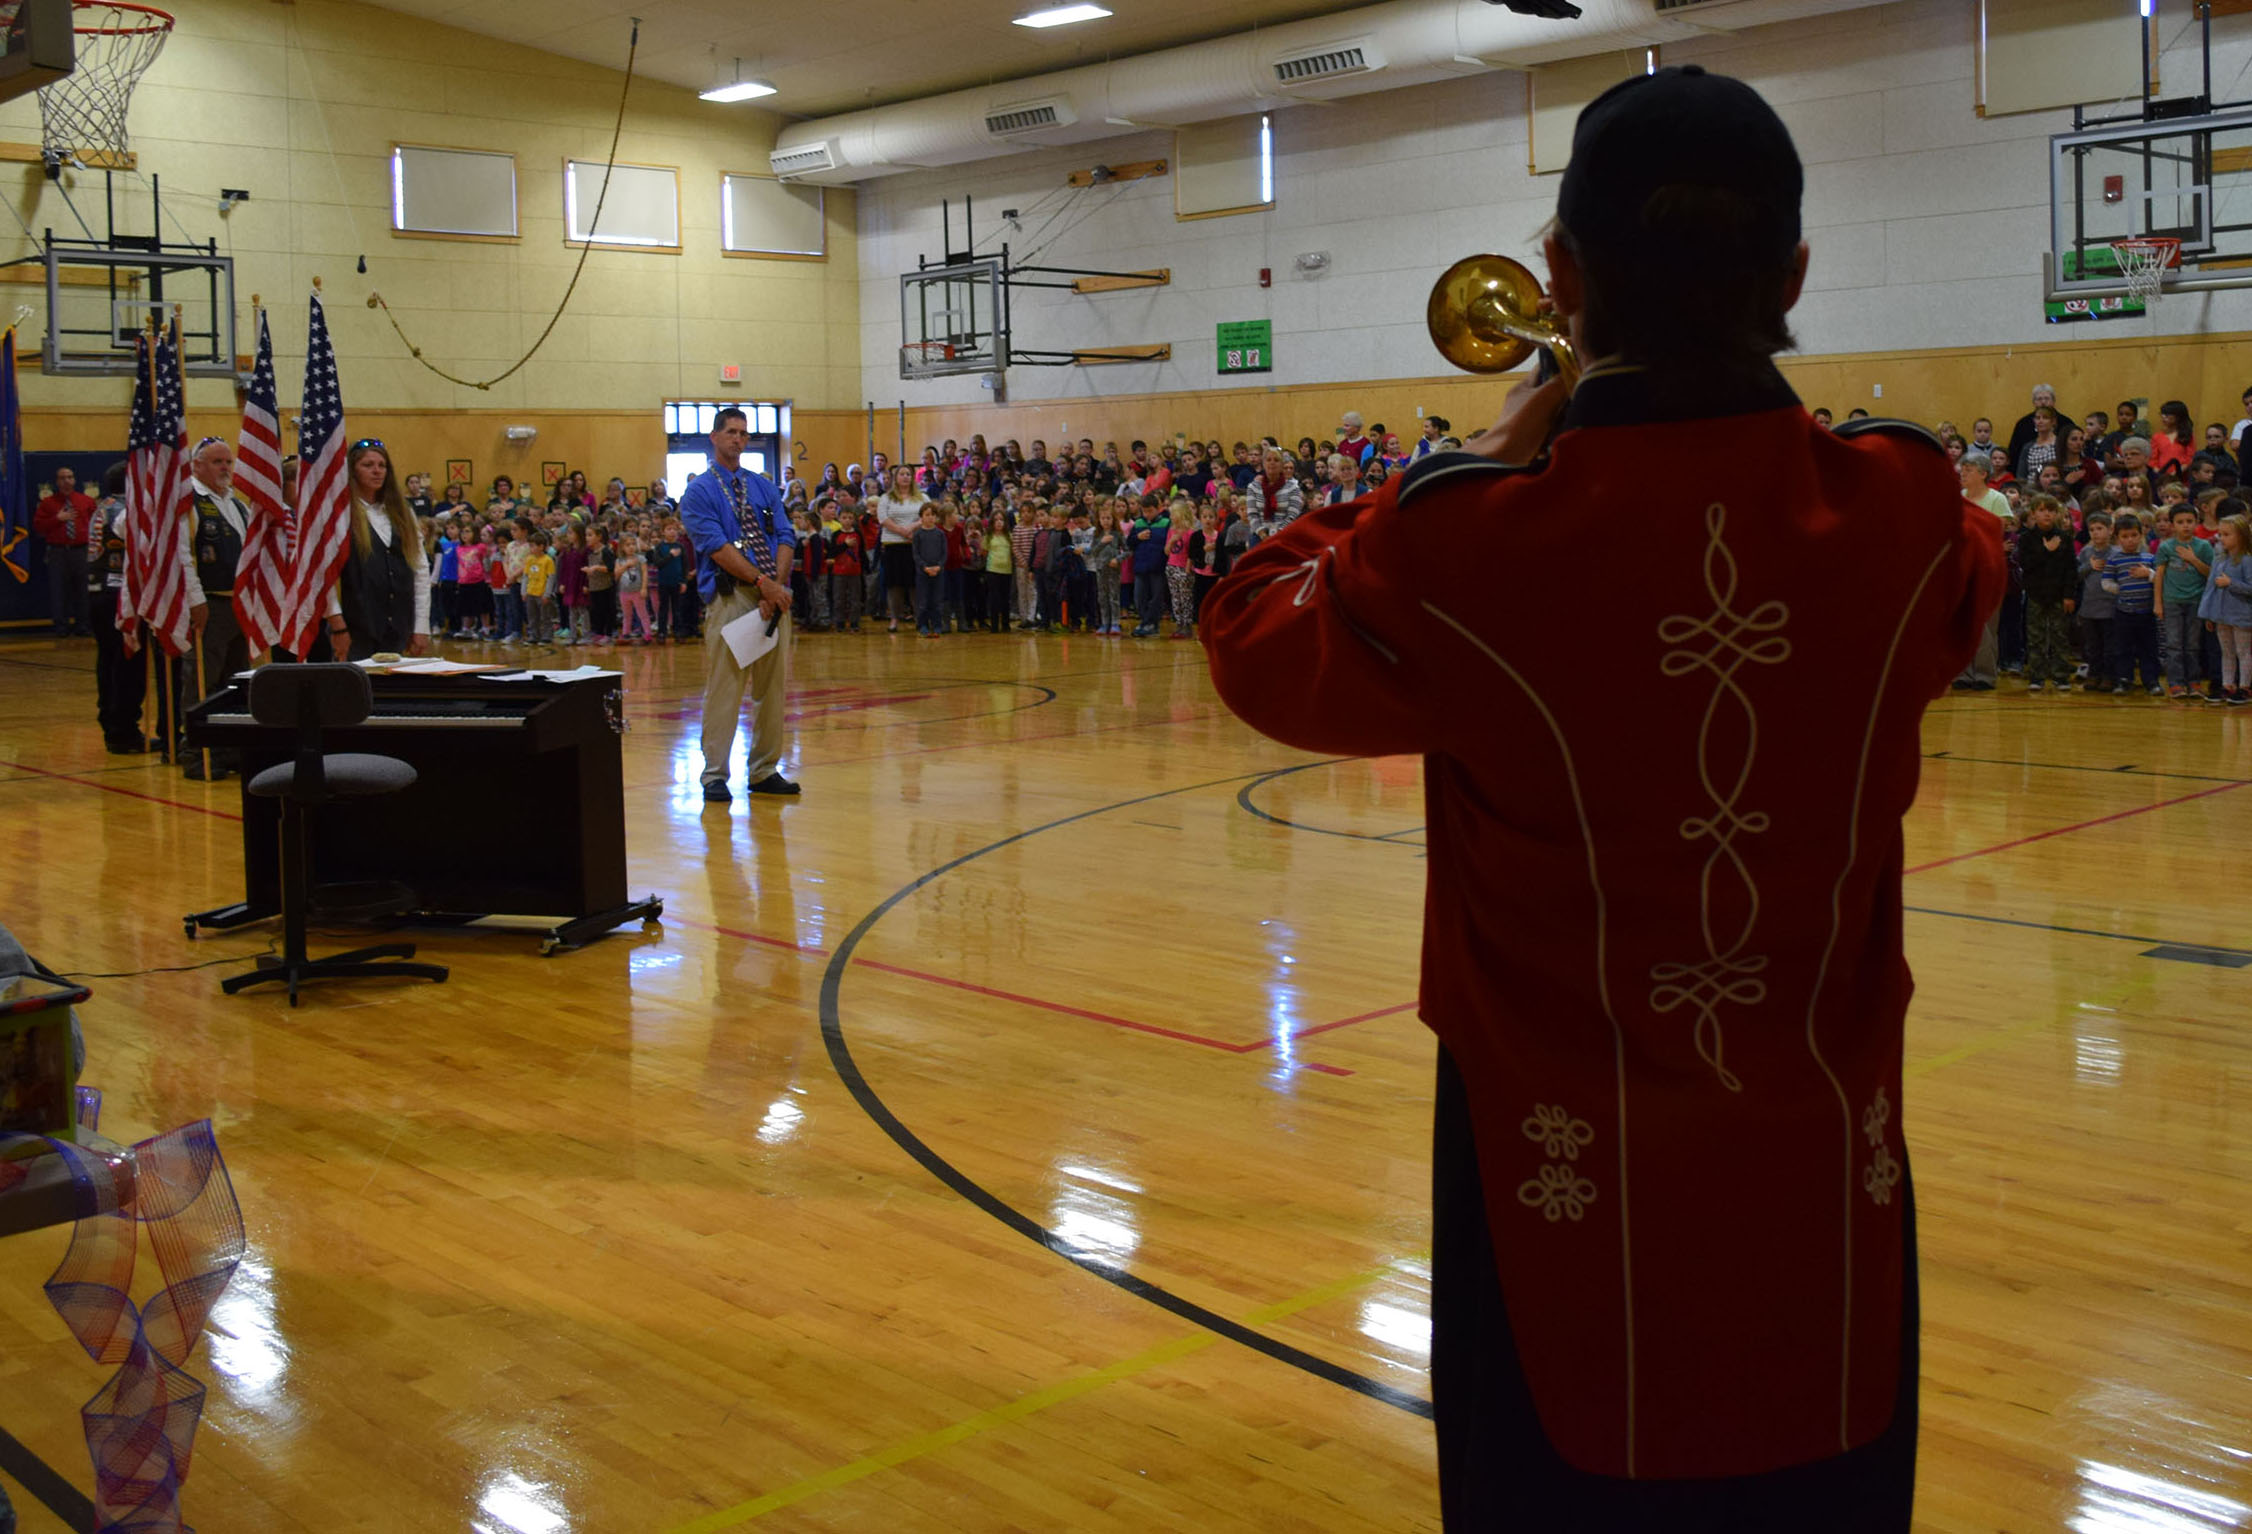 Wells High School student Kiah Holdsworth plays Taps at the Veterans K-4 Assembly at Wells Elementary School on Nov. 10.